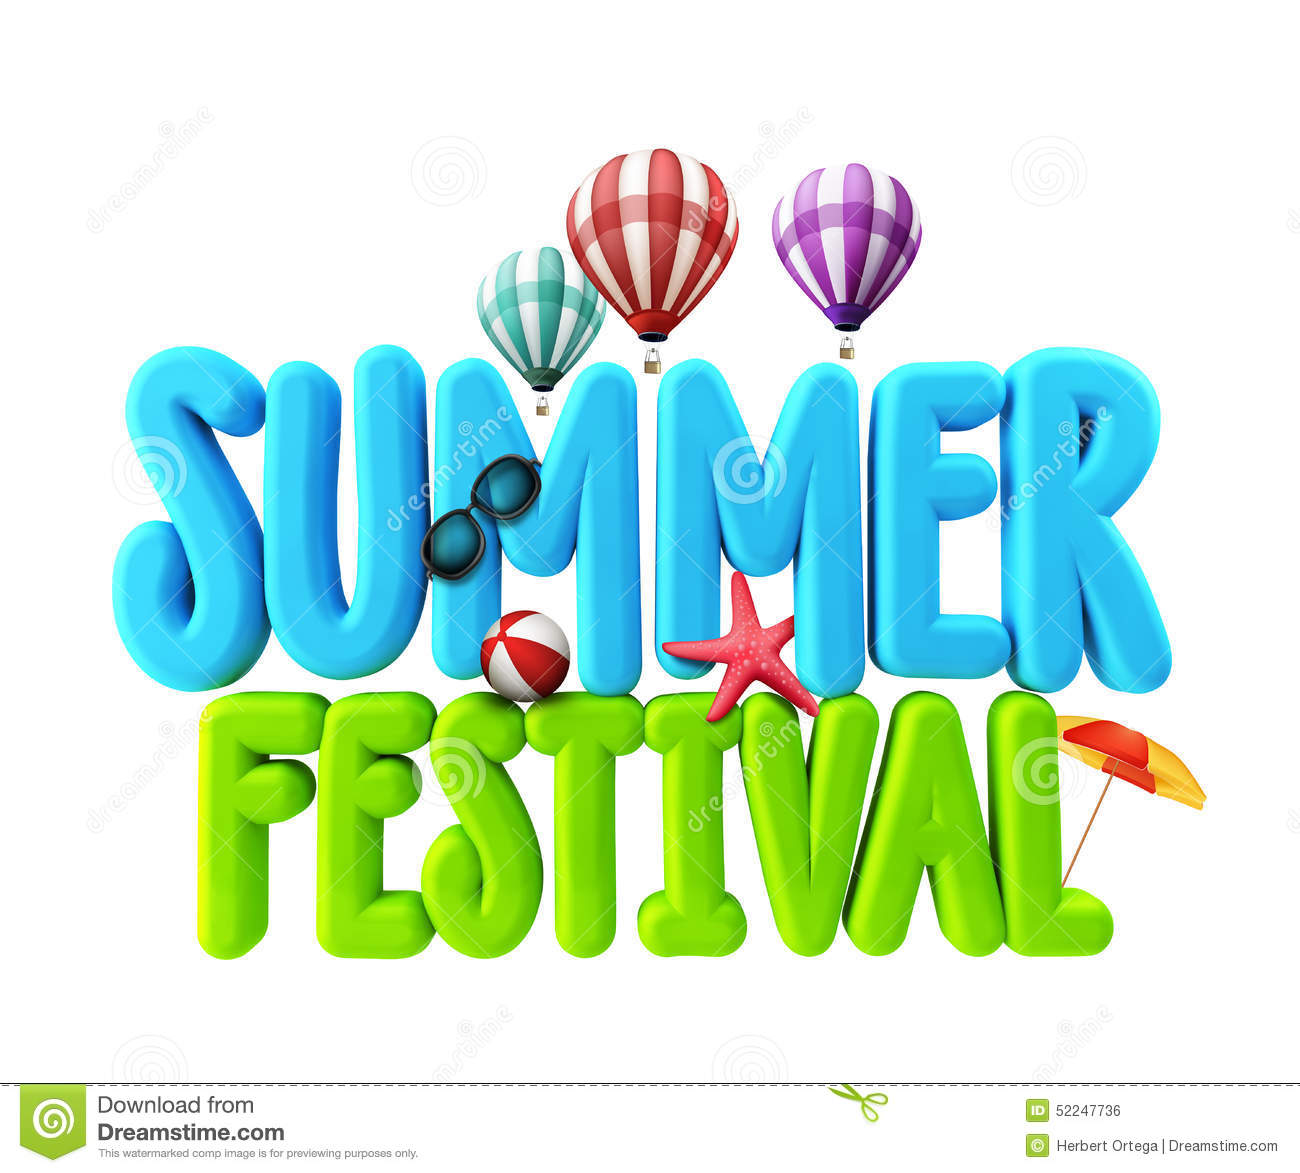 Festival clipart Clipart Download Summer Festival Summer